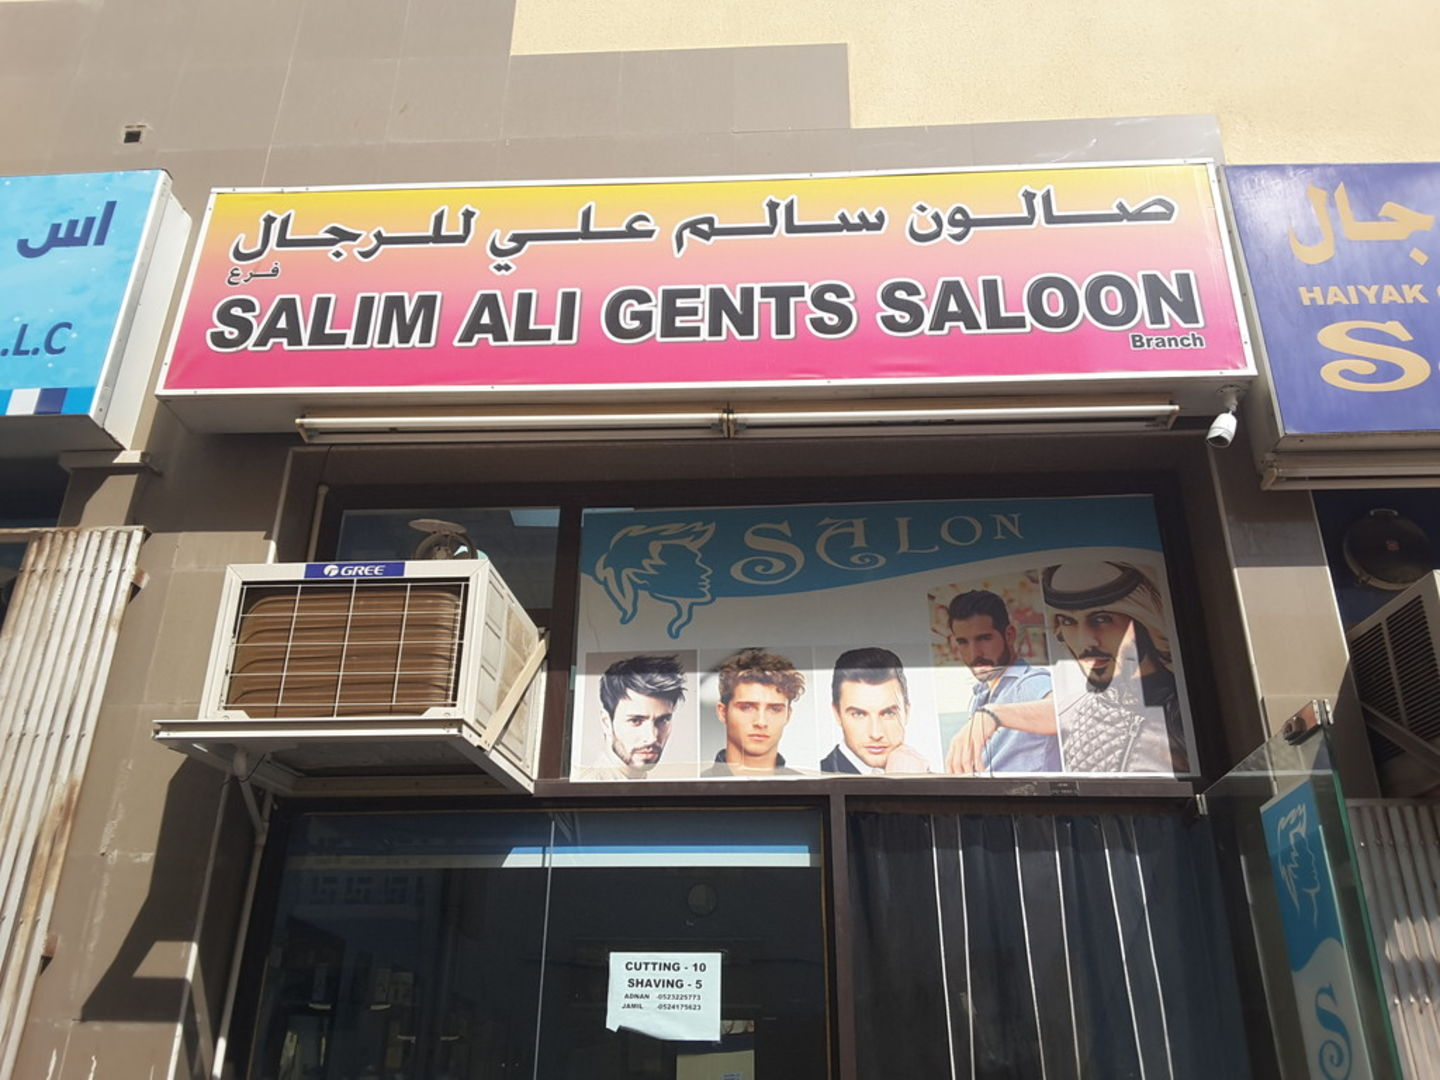 HiDubai-business-salim-ali-gents-saloon-beauty-wellness-health-beauty-salons-al-raffa-al-raffa-dubai-2